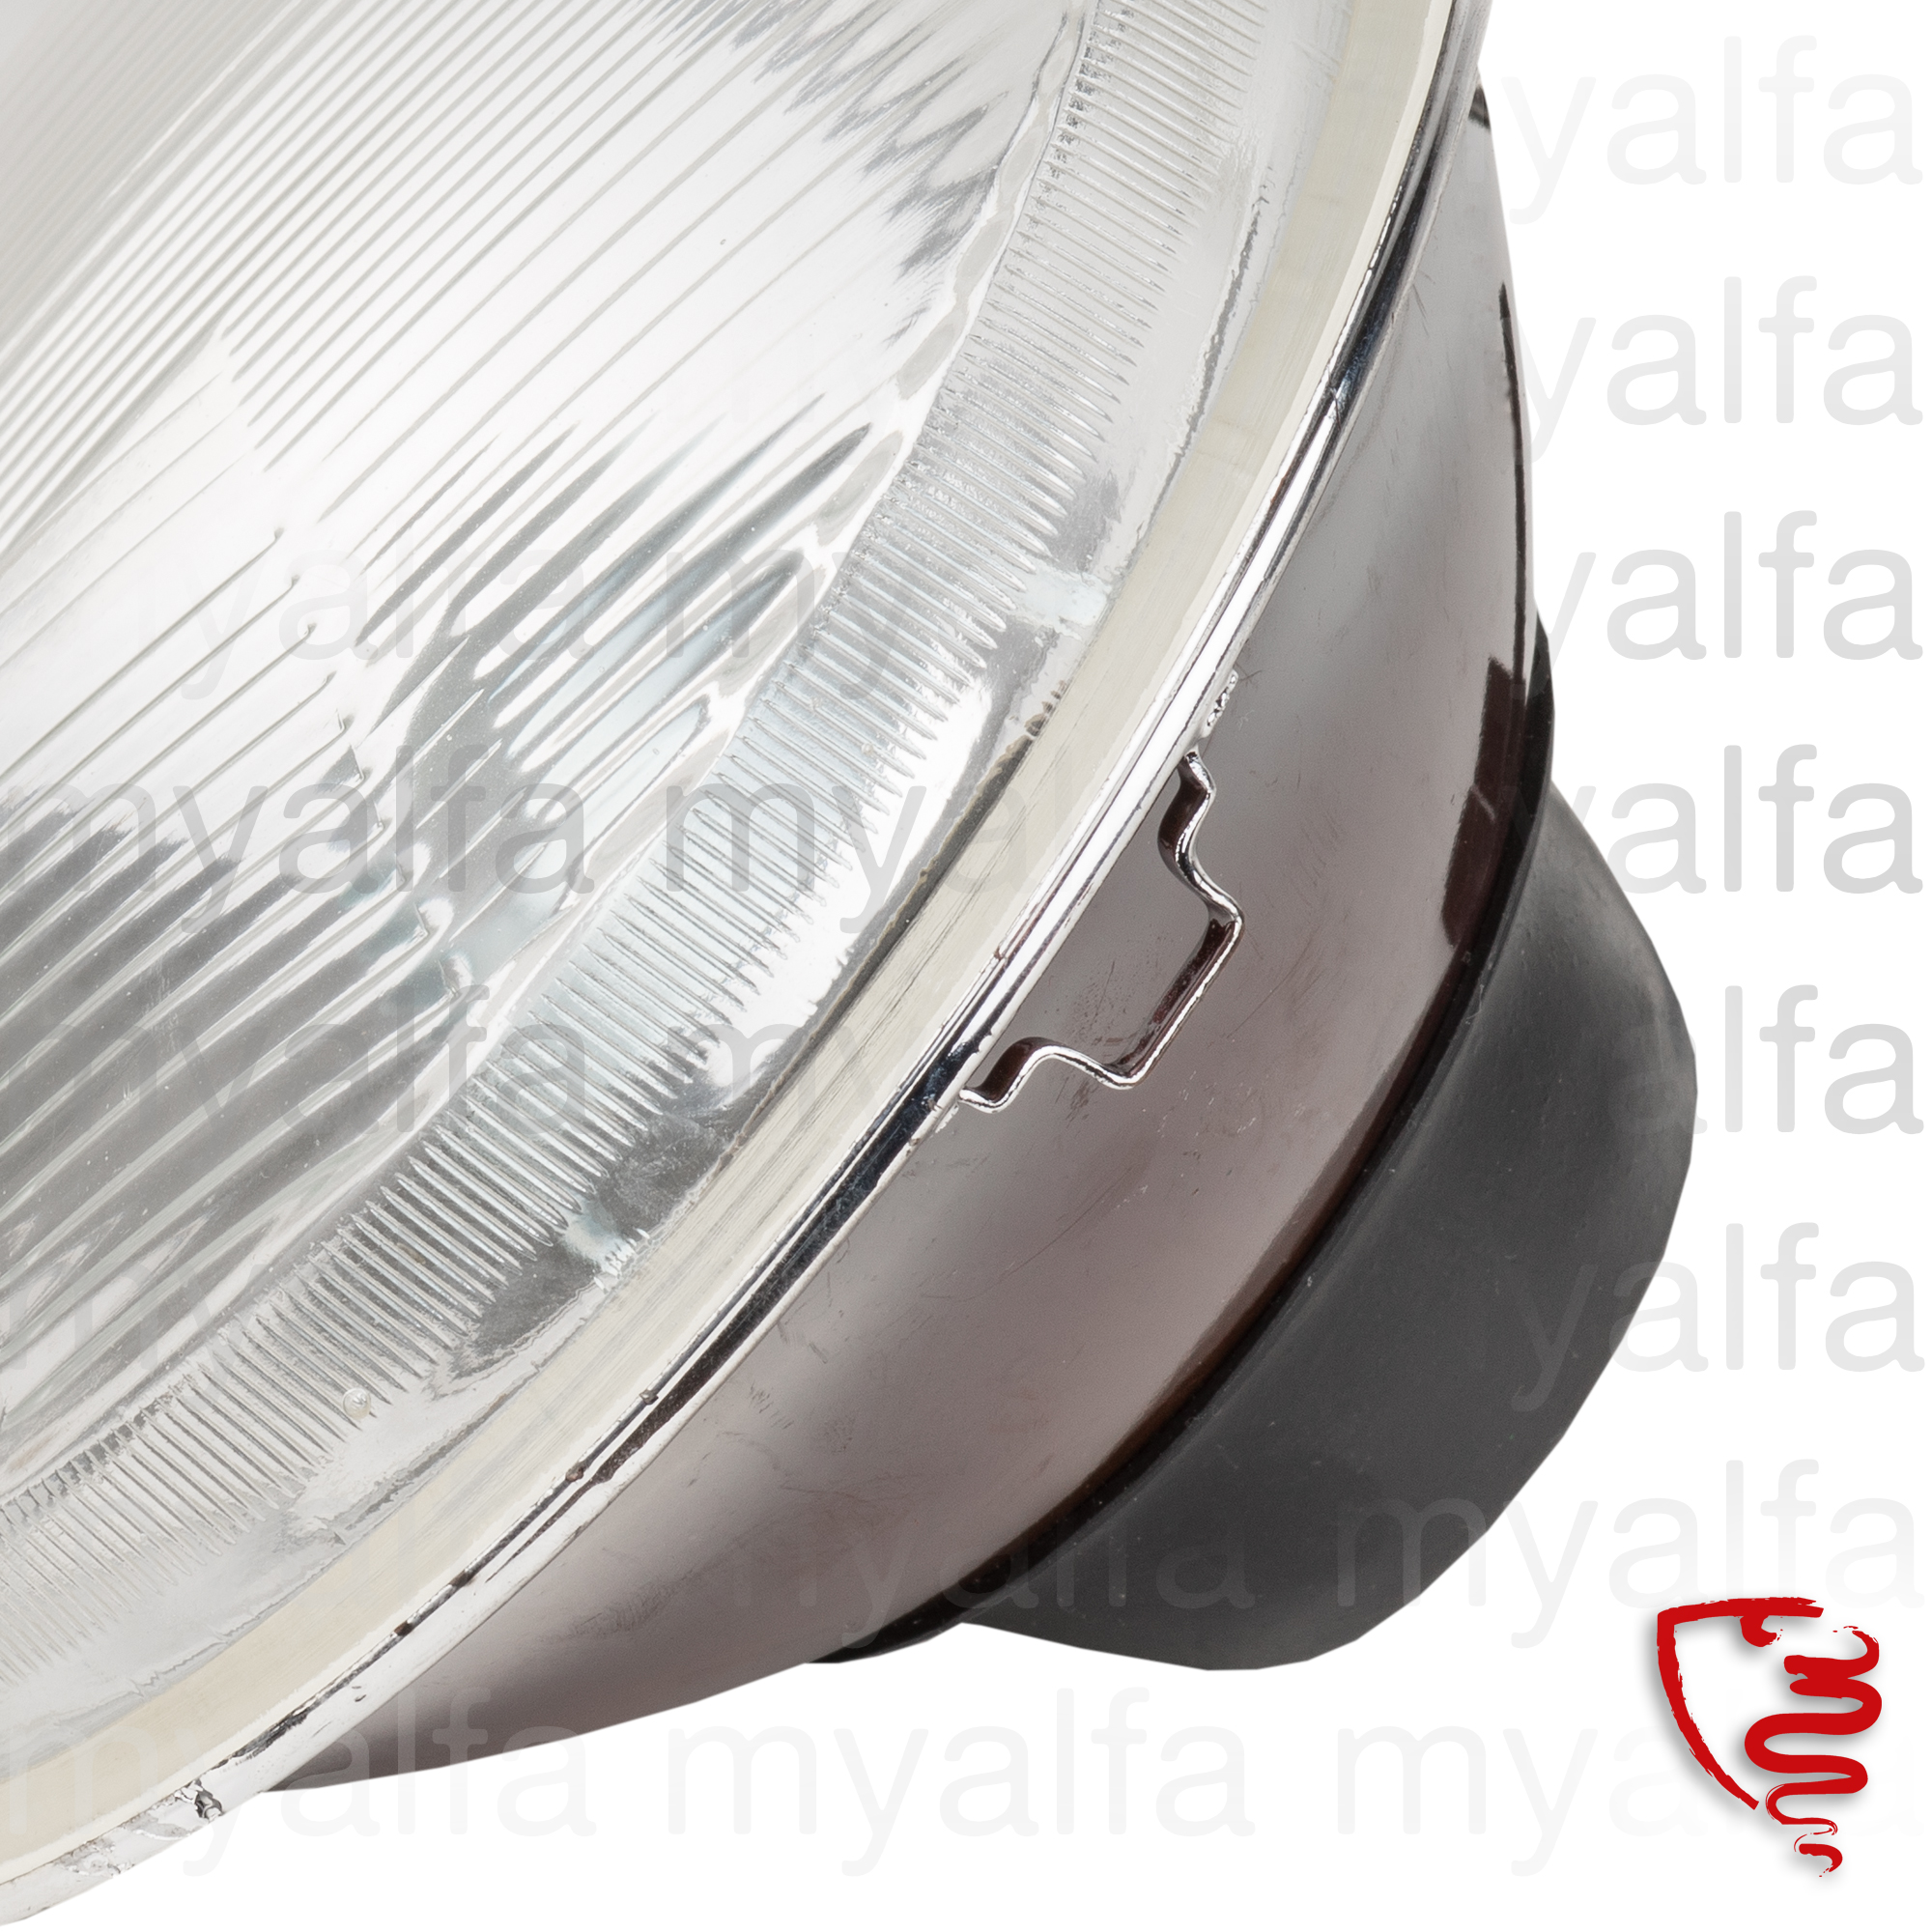 Lighthouse h4 7 'LHD for GT bertone / Giulia Spider and 62/67 for 105/115, Body parts, Lighting, Head lamps